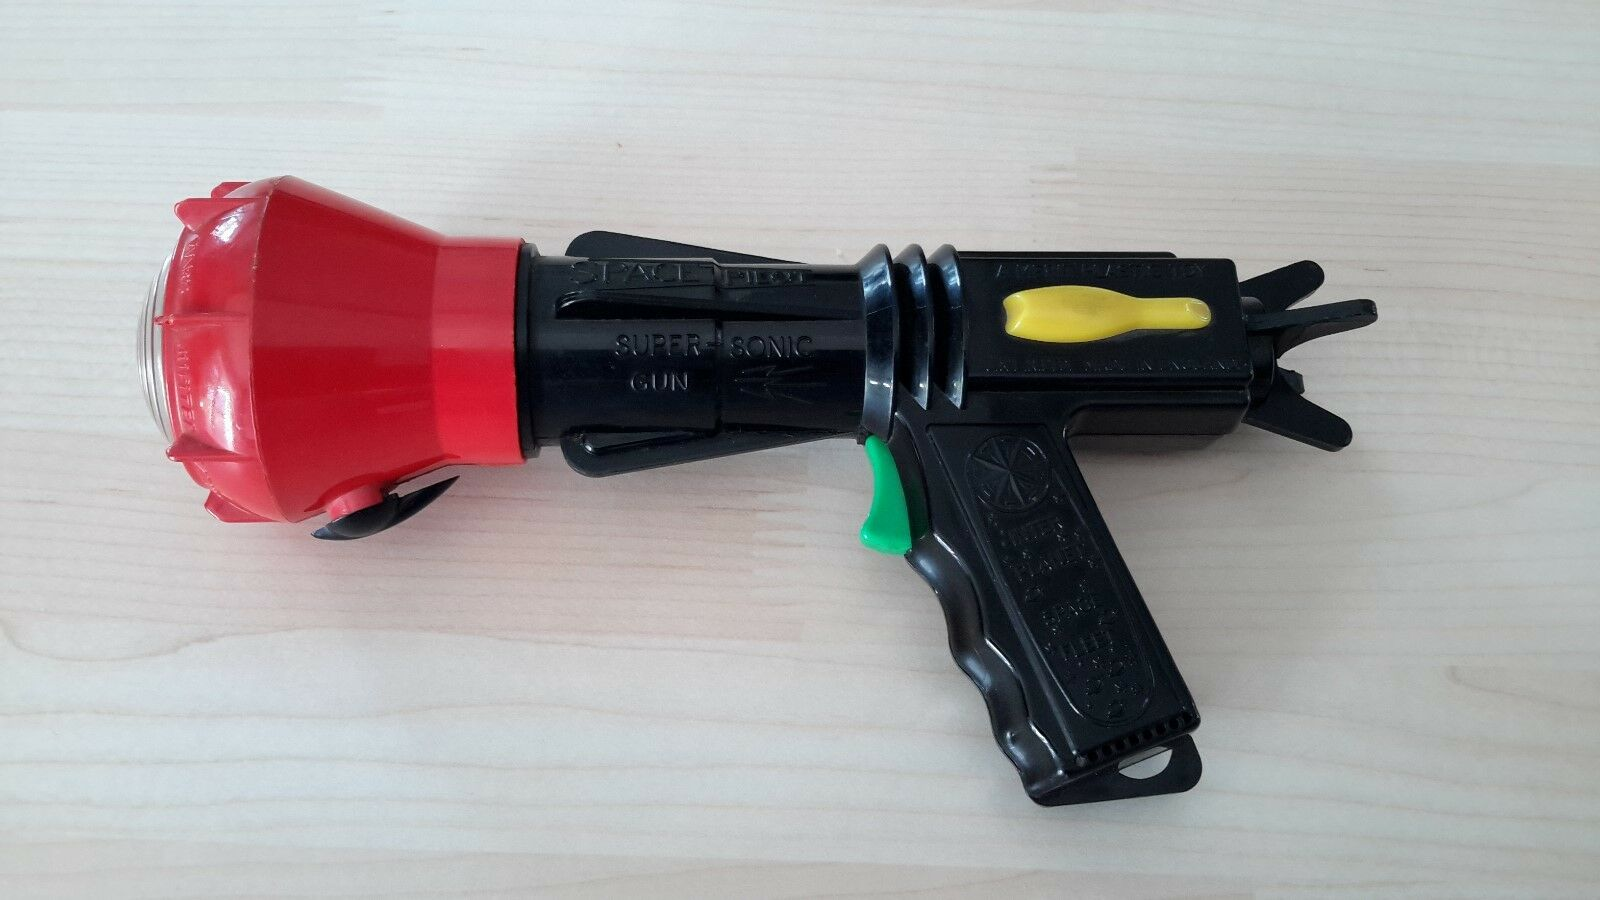 REDUCED   Very Rare Original Vintage Dan Dare 1950s Space Pilot Sonic Gun